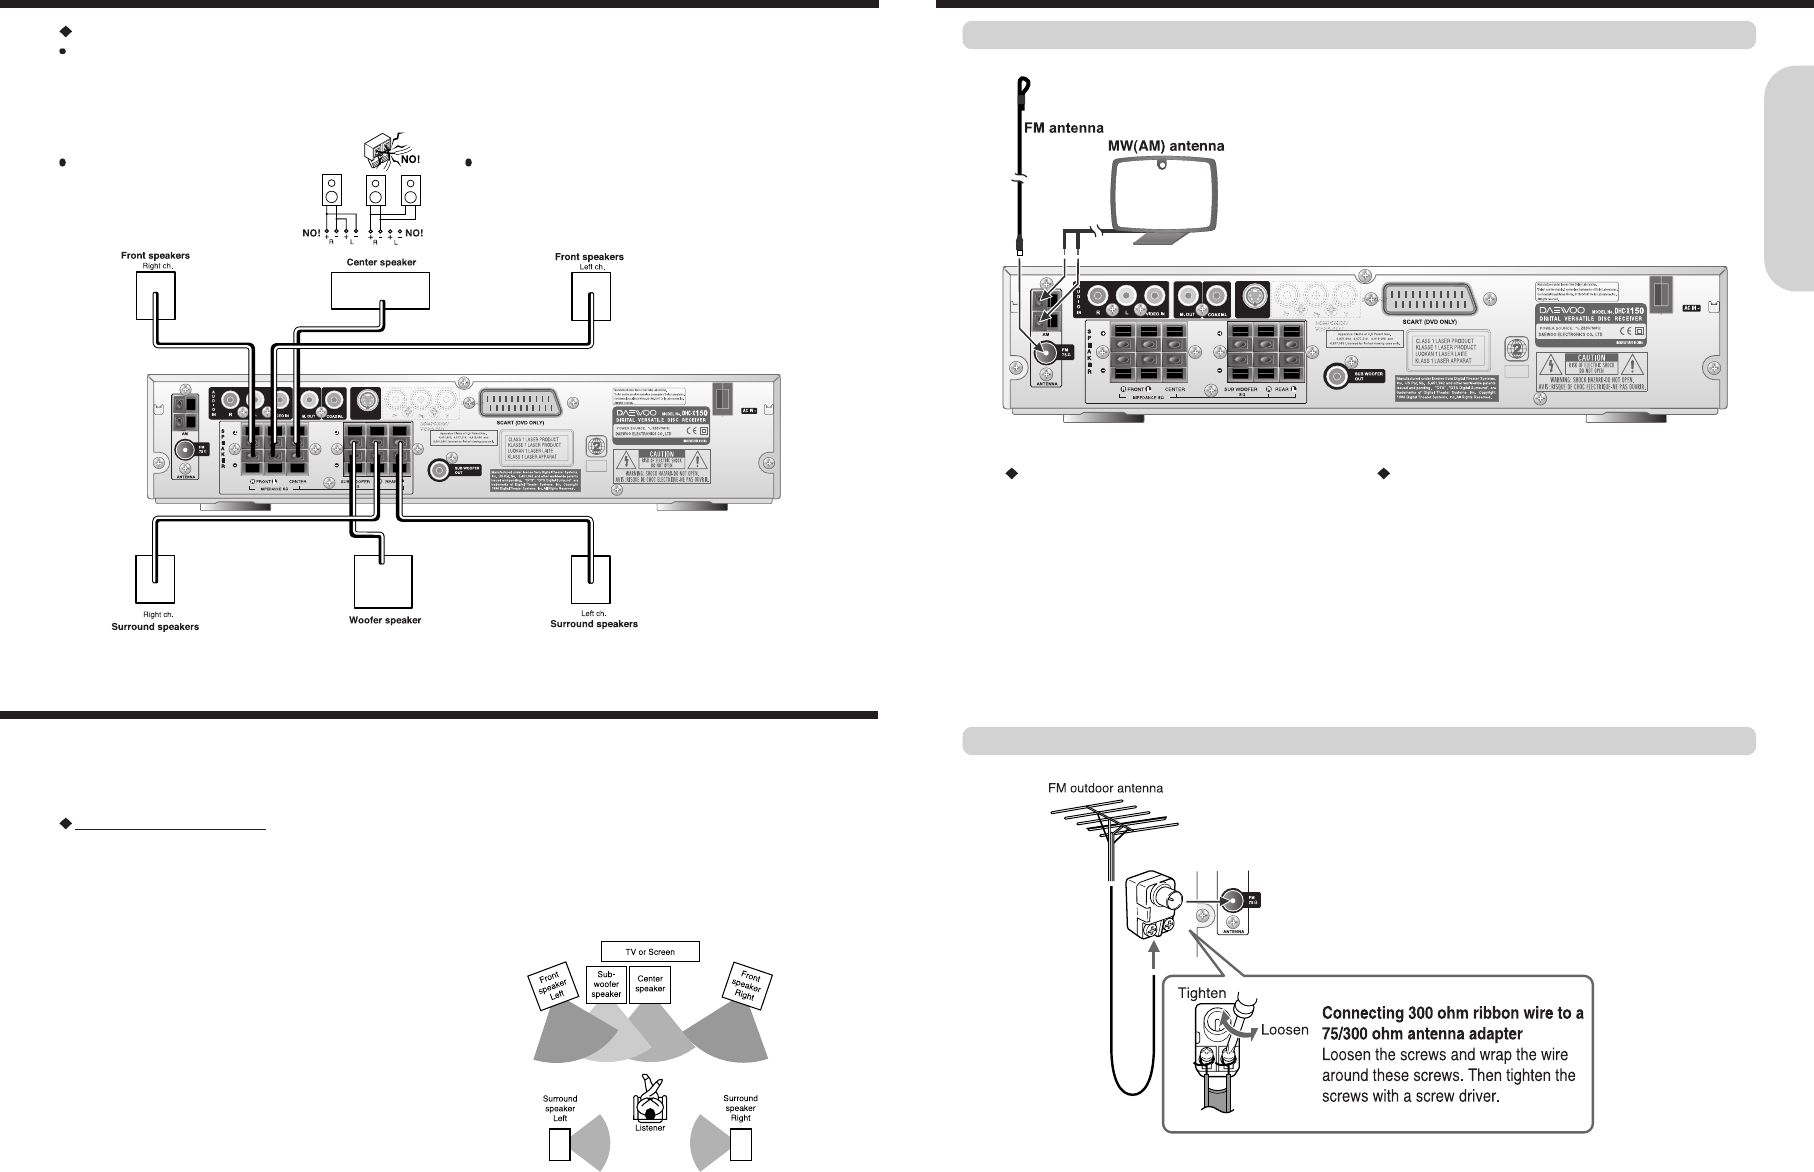 Daewoo Speakers Wiring Diagram Images Tico And Schematics On Handleiding Dhc X 150 Pagina 5 Van 22 English